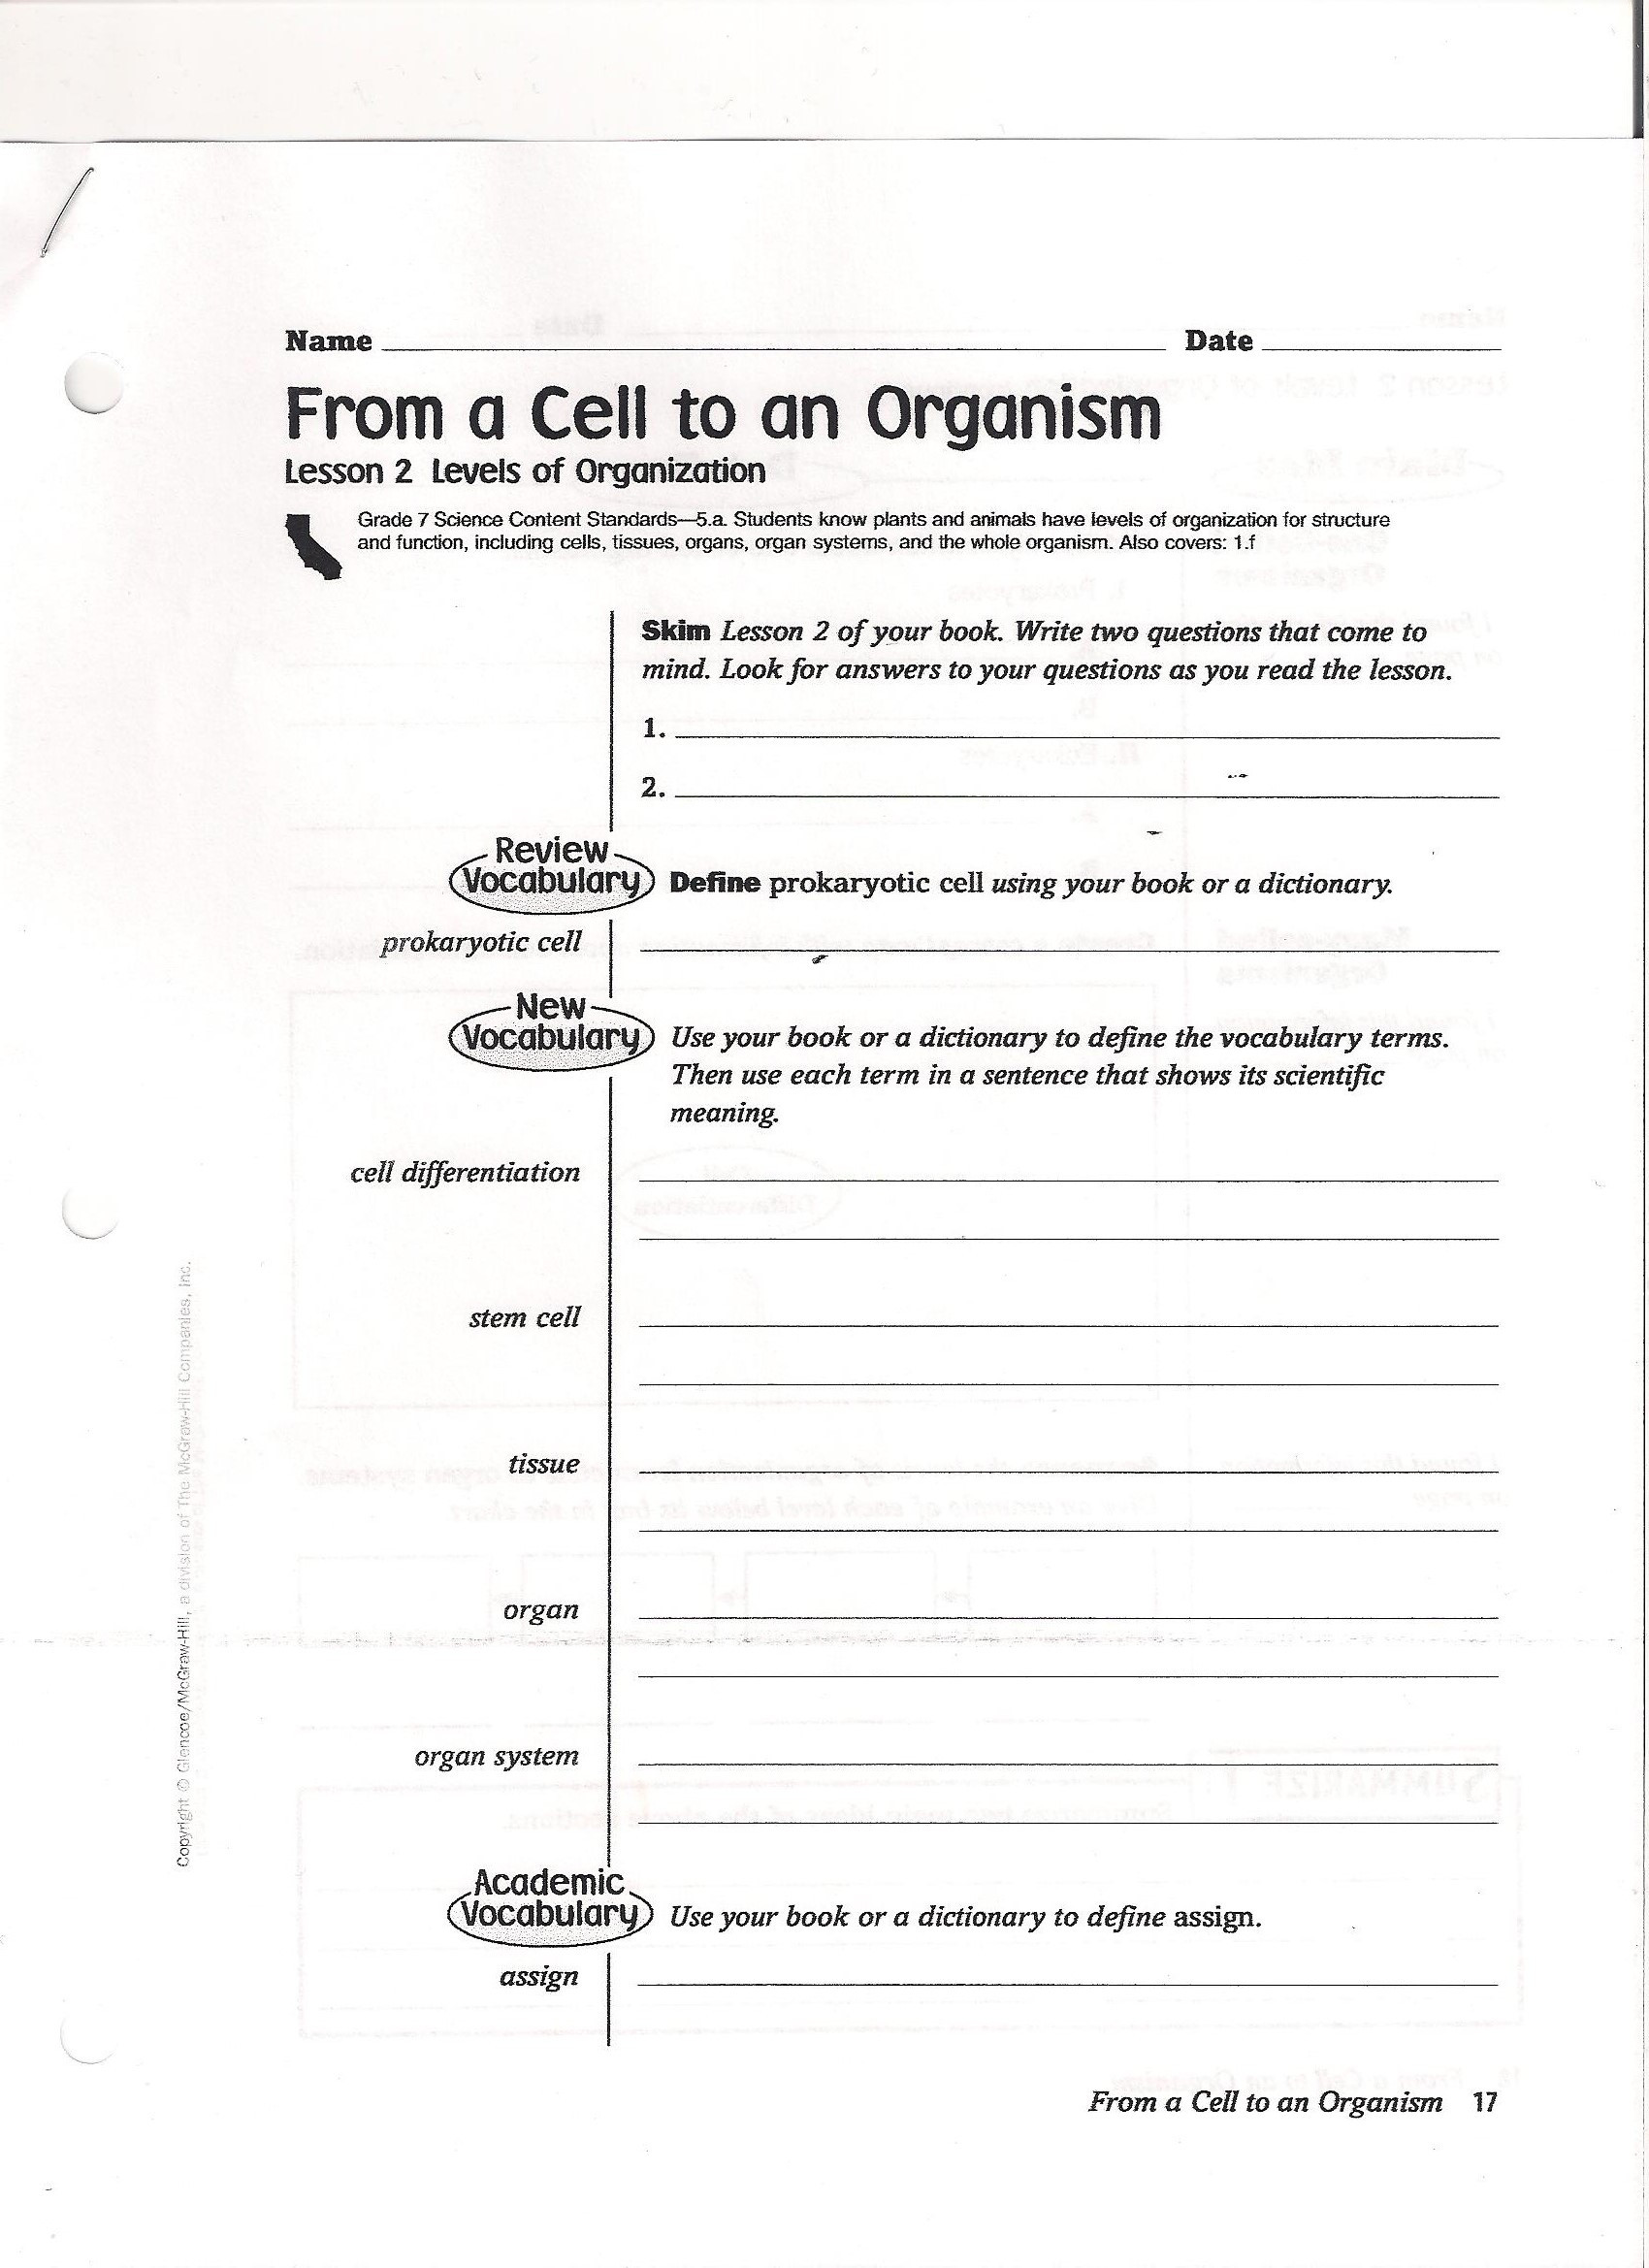 7th Grade Life Science Worksheets Unique is Life Science Worksheet Educational 7th Grade Cell